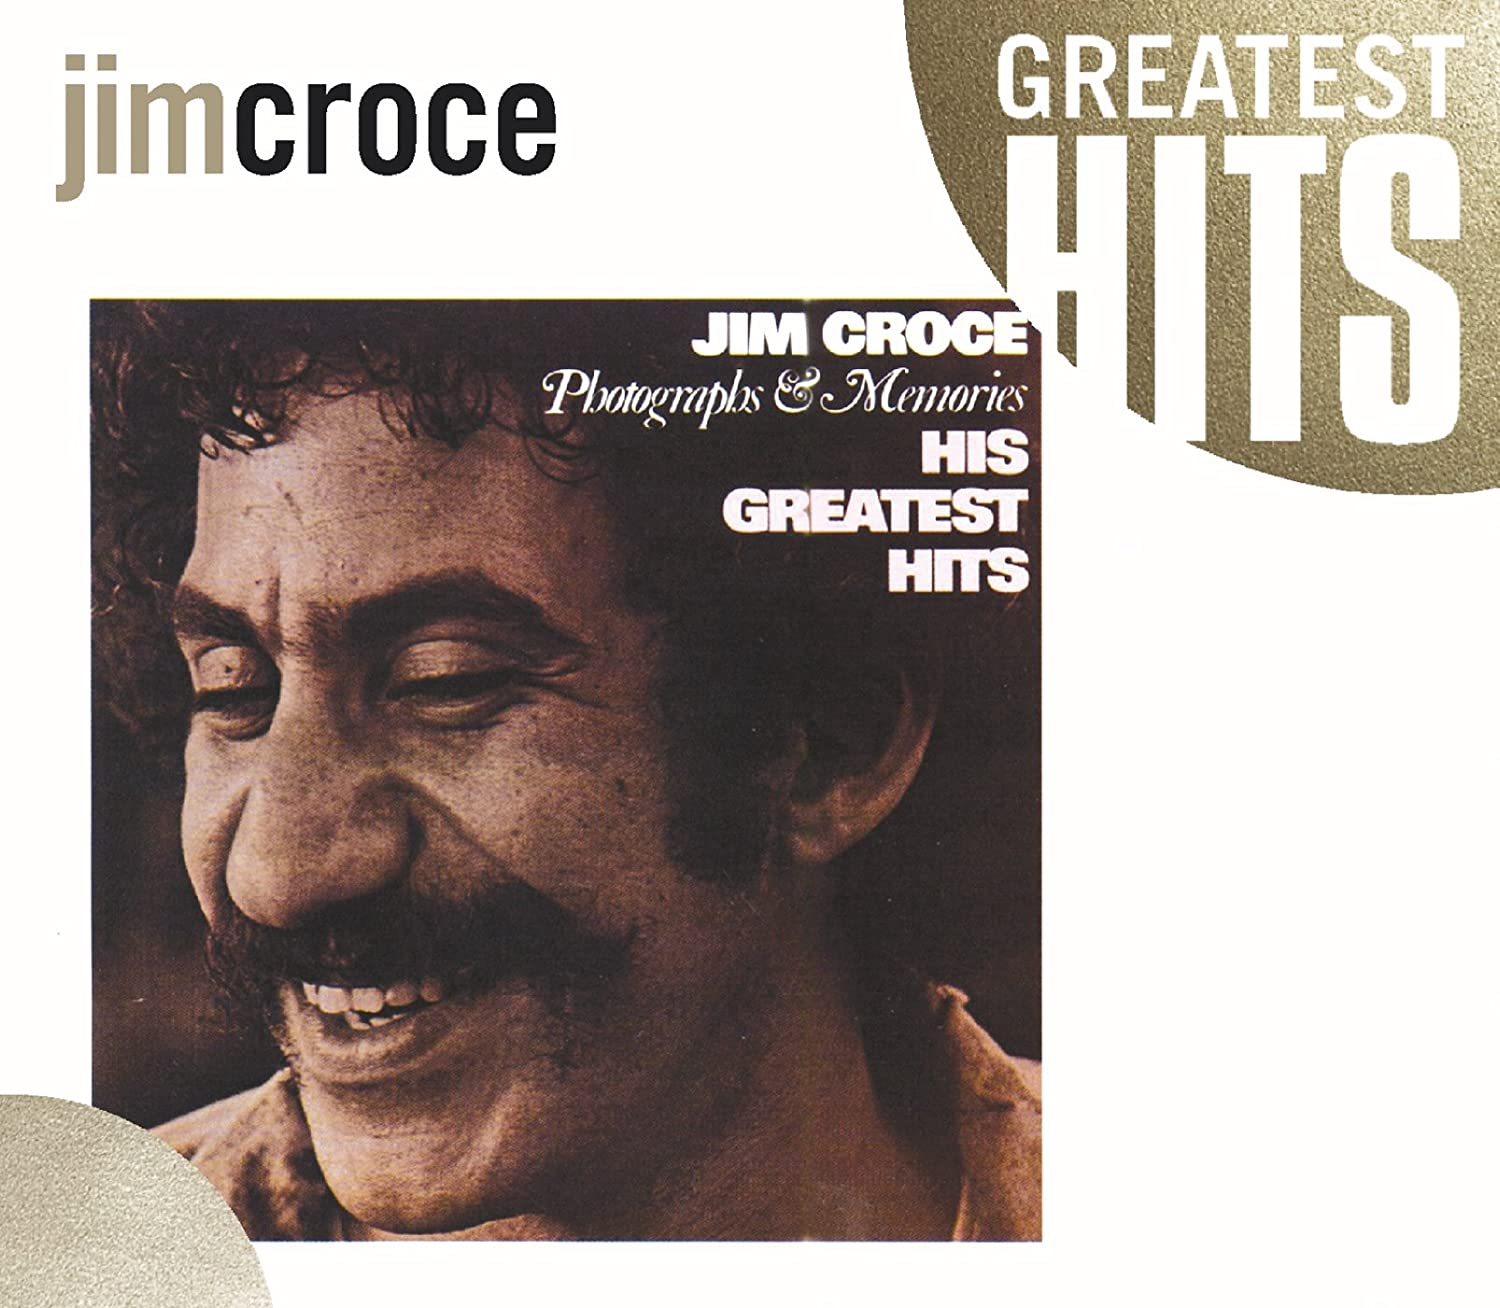 Photographs Memories - His Greatest Hits by